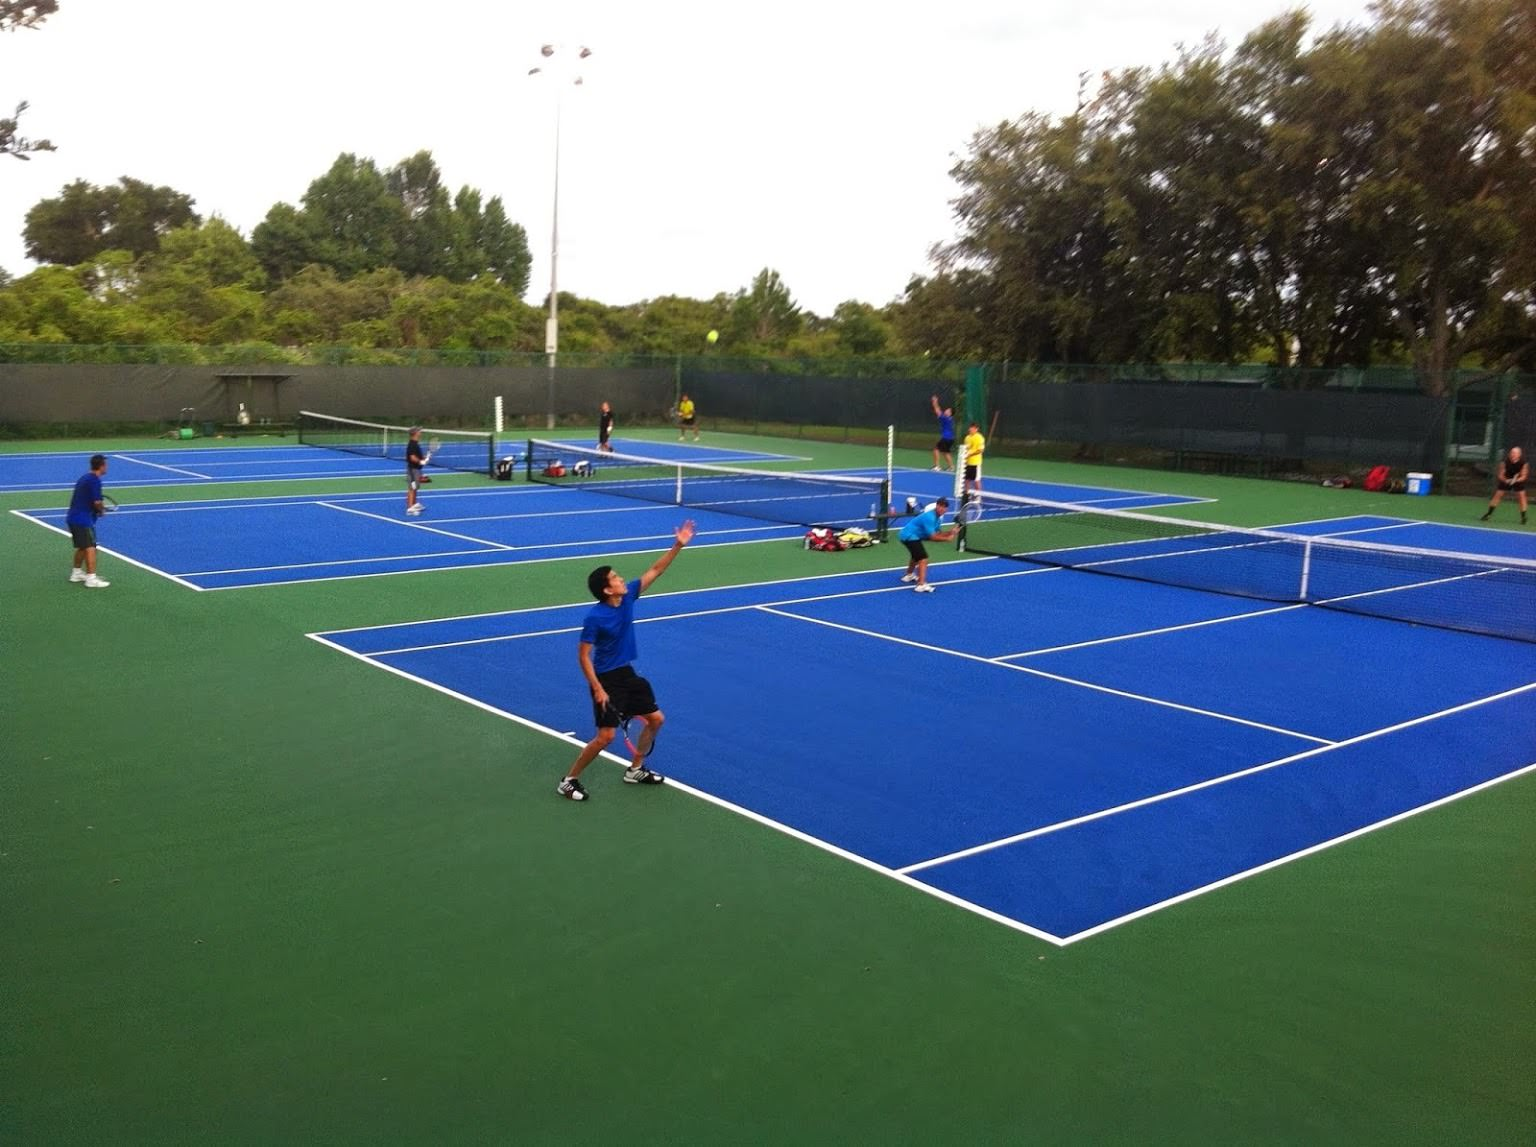 Lake_Cane_Tennis_Center_orlando